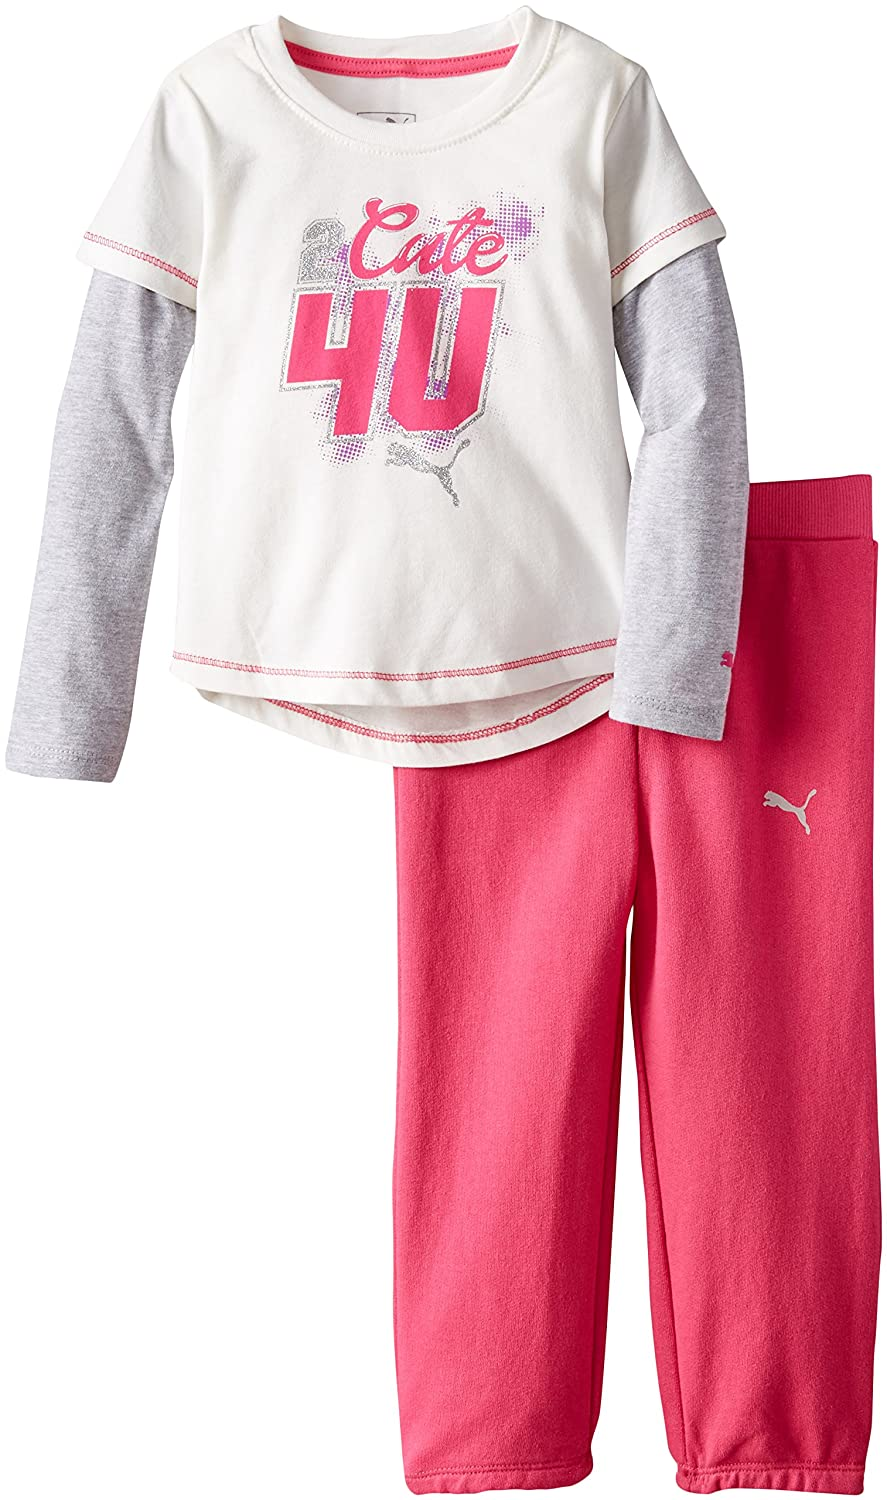 PUMA Little Girls' Twofer and Pant Set 1155094